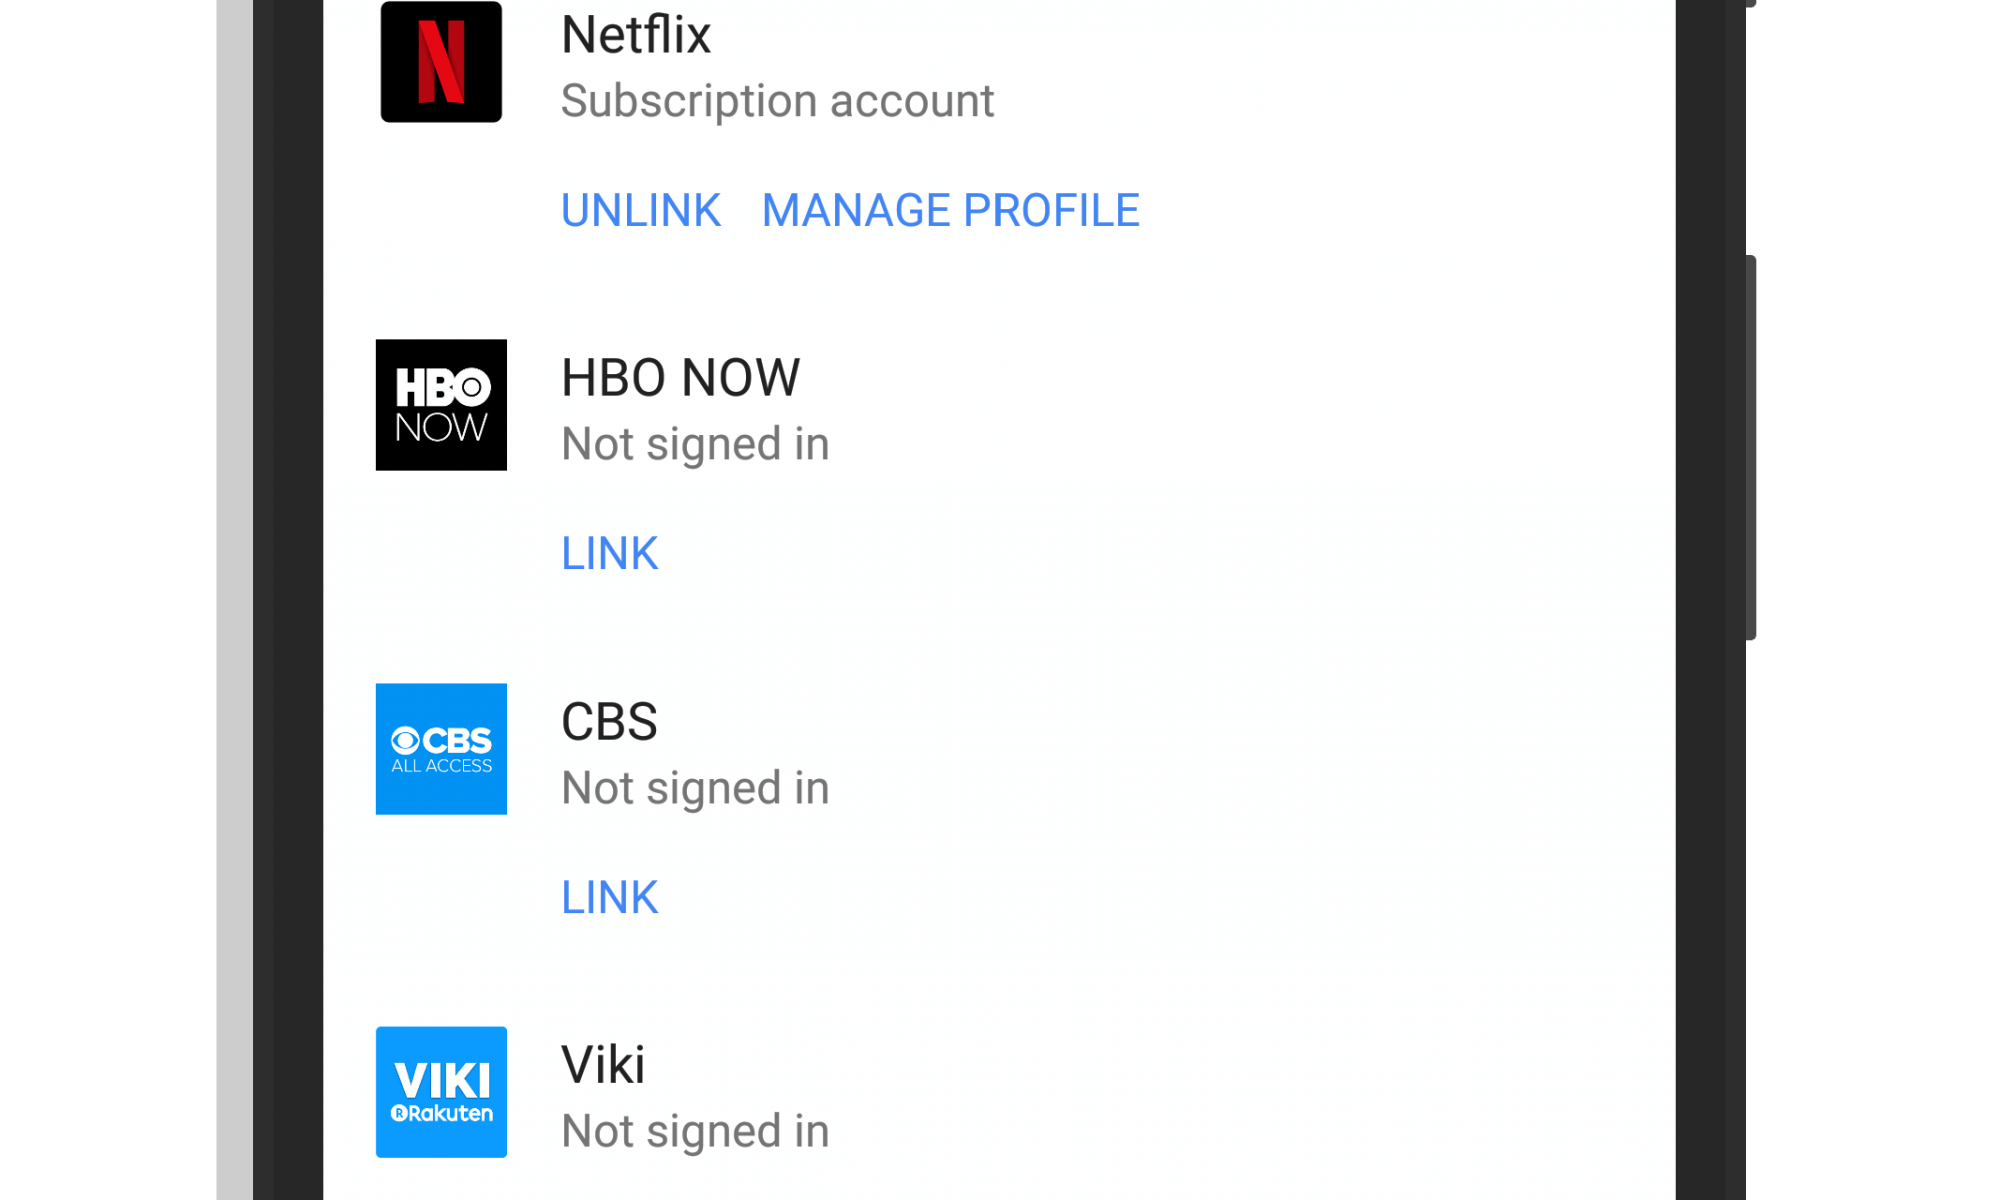 Netflix Profile Manager in Google Home